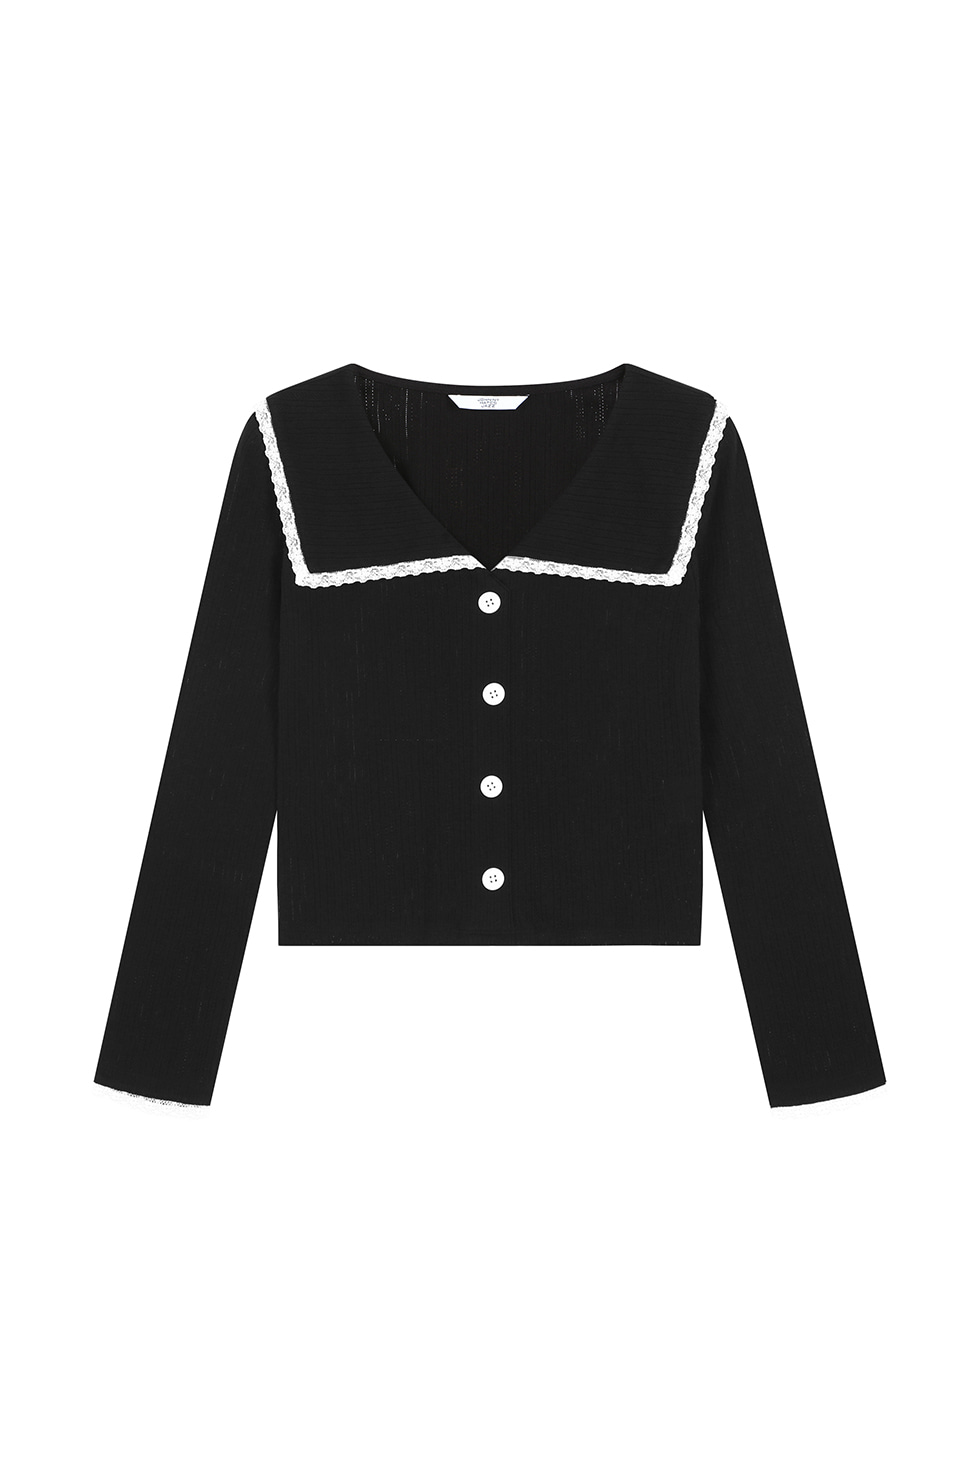 [4월 20일 예약배송]SAILOR COLLAR LONG SLEEVES - BLACK